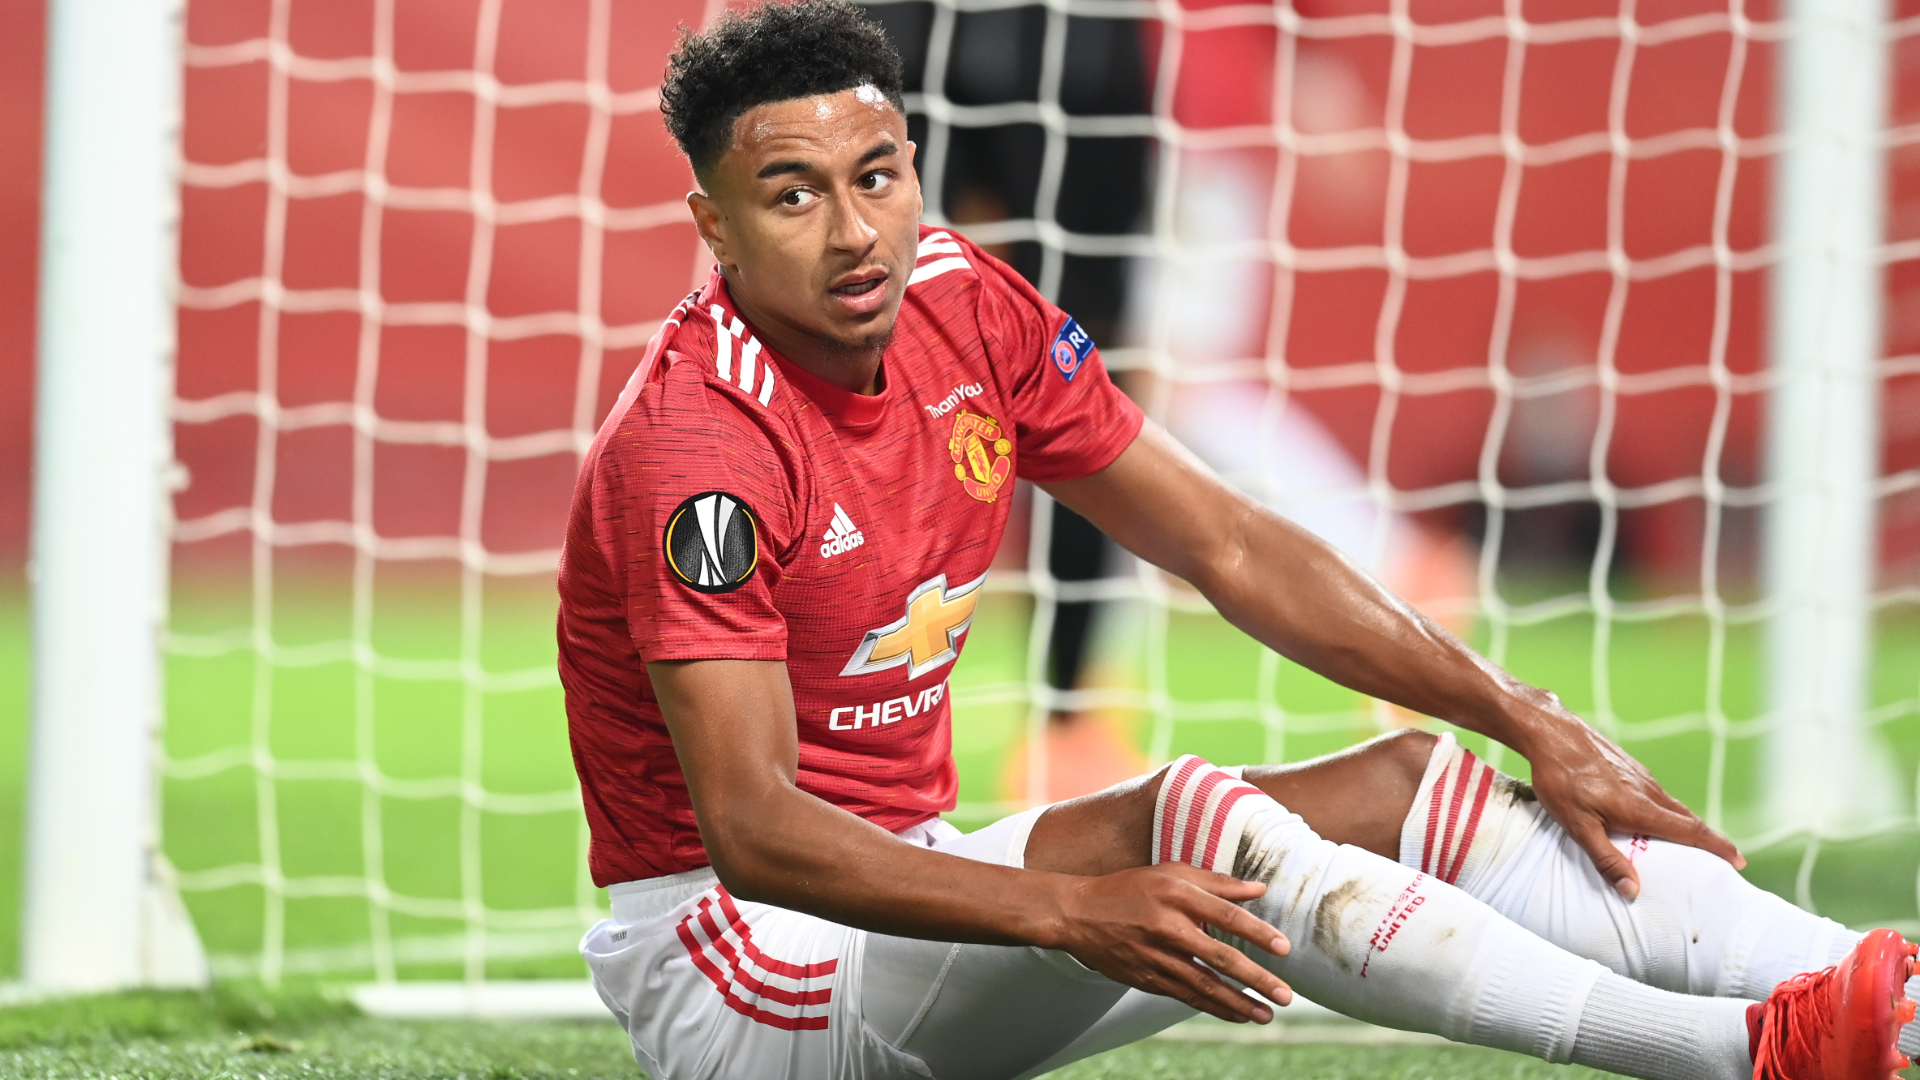 'Lingard's time at Man Utd is up' - Solskjaer doesn't trust midfielder, says Berbatov